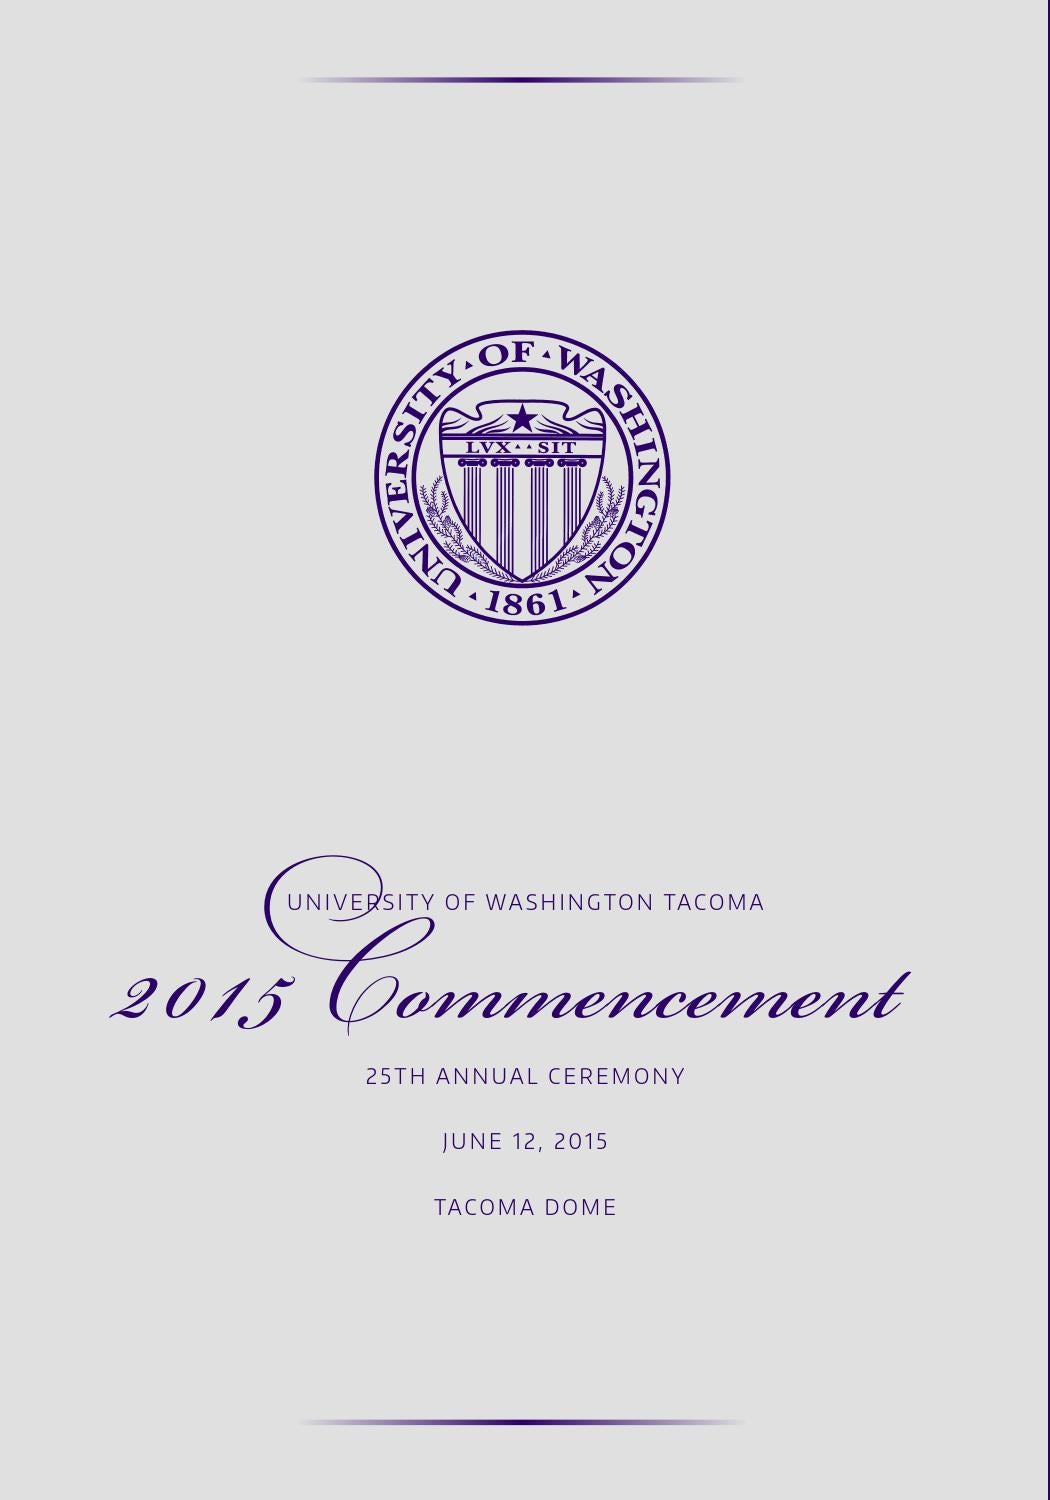 uw tacoma 25th annual commencement 2015 by uw tacoma issuu